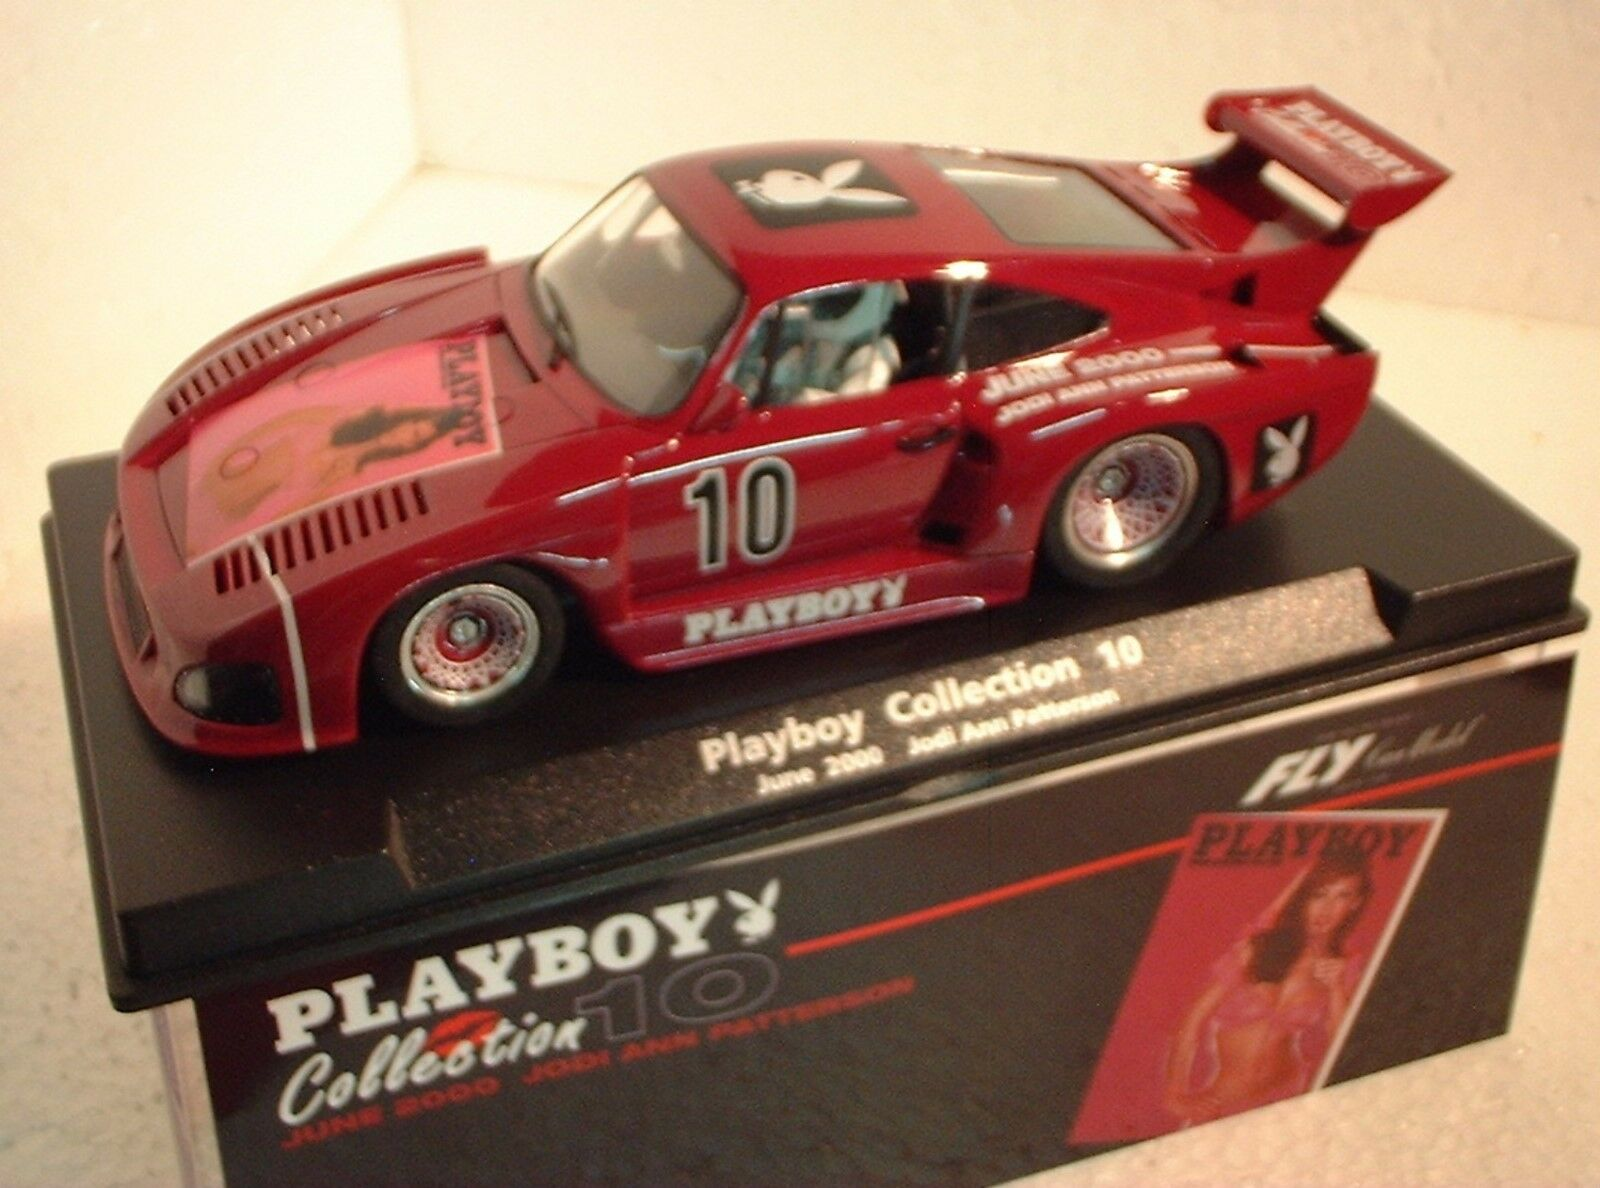 Qq 99059 FLY PORSCHE 935 K3 PLAYBOY COLLECTION 10 GIUGNO 2000 JODI ANN PATTERSON